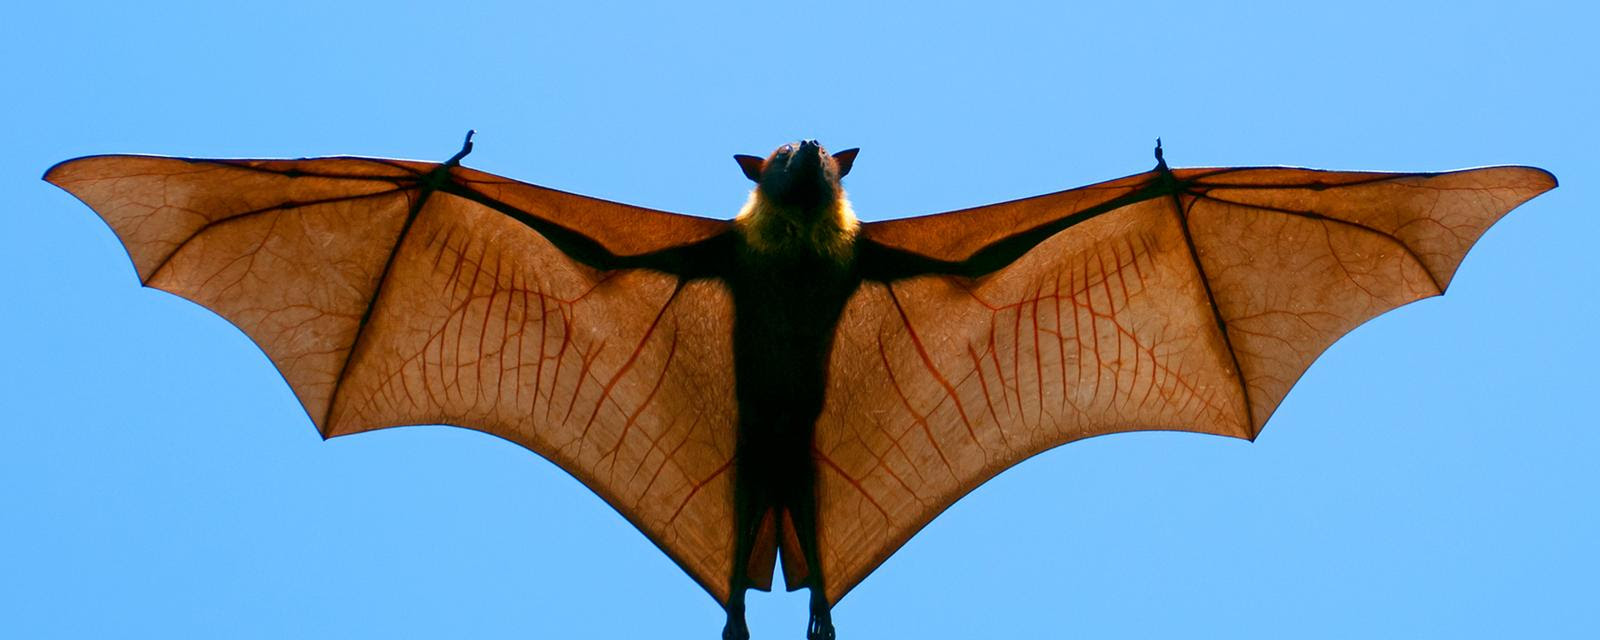 An Indian flying fox (Pteropus giganteus) in mid-air (Credit: Axel Gomille/NPL)